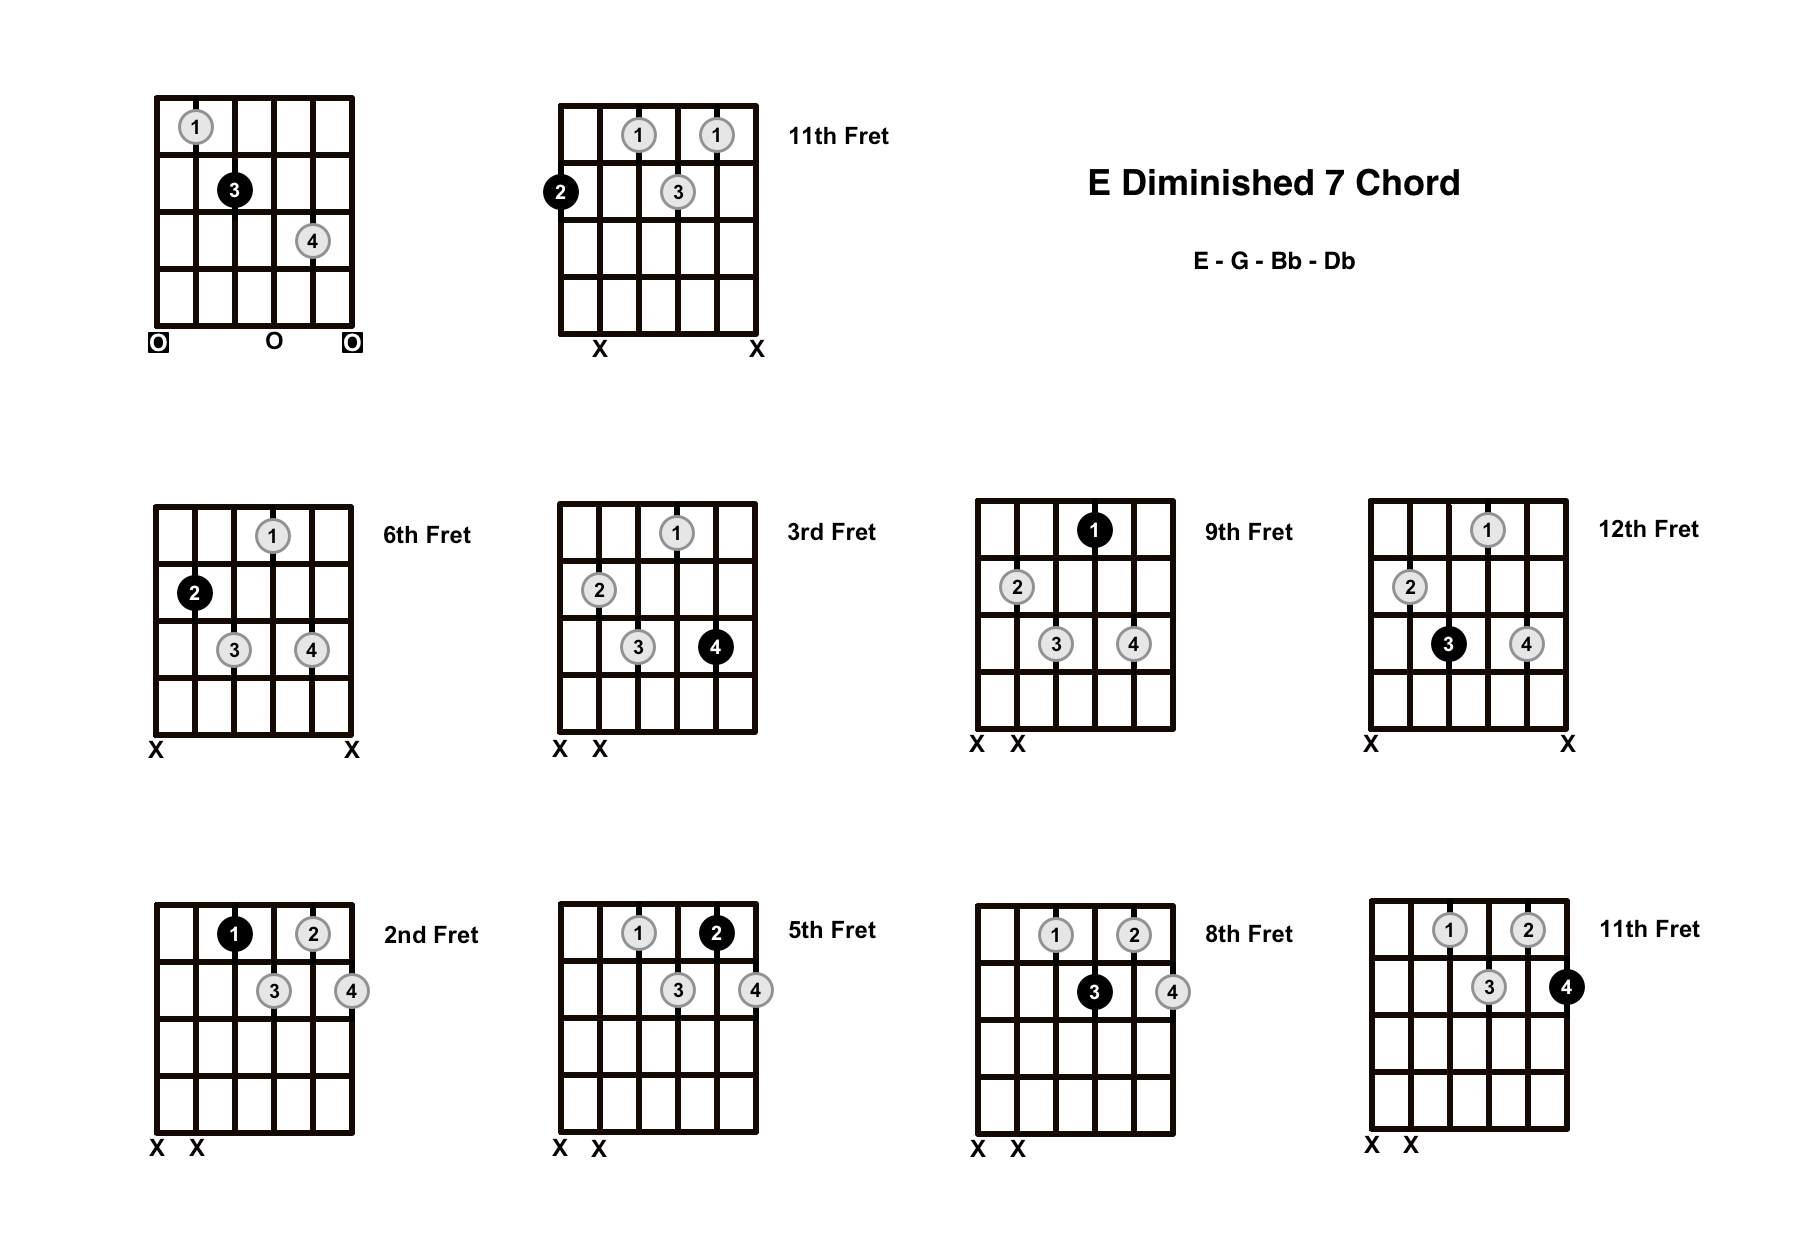 E Diminished 7 Chord On The Guitar (E Dim 7) – Diagrams, Finger Positions and Theory